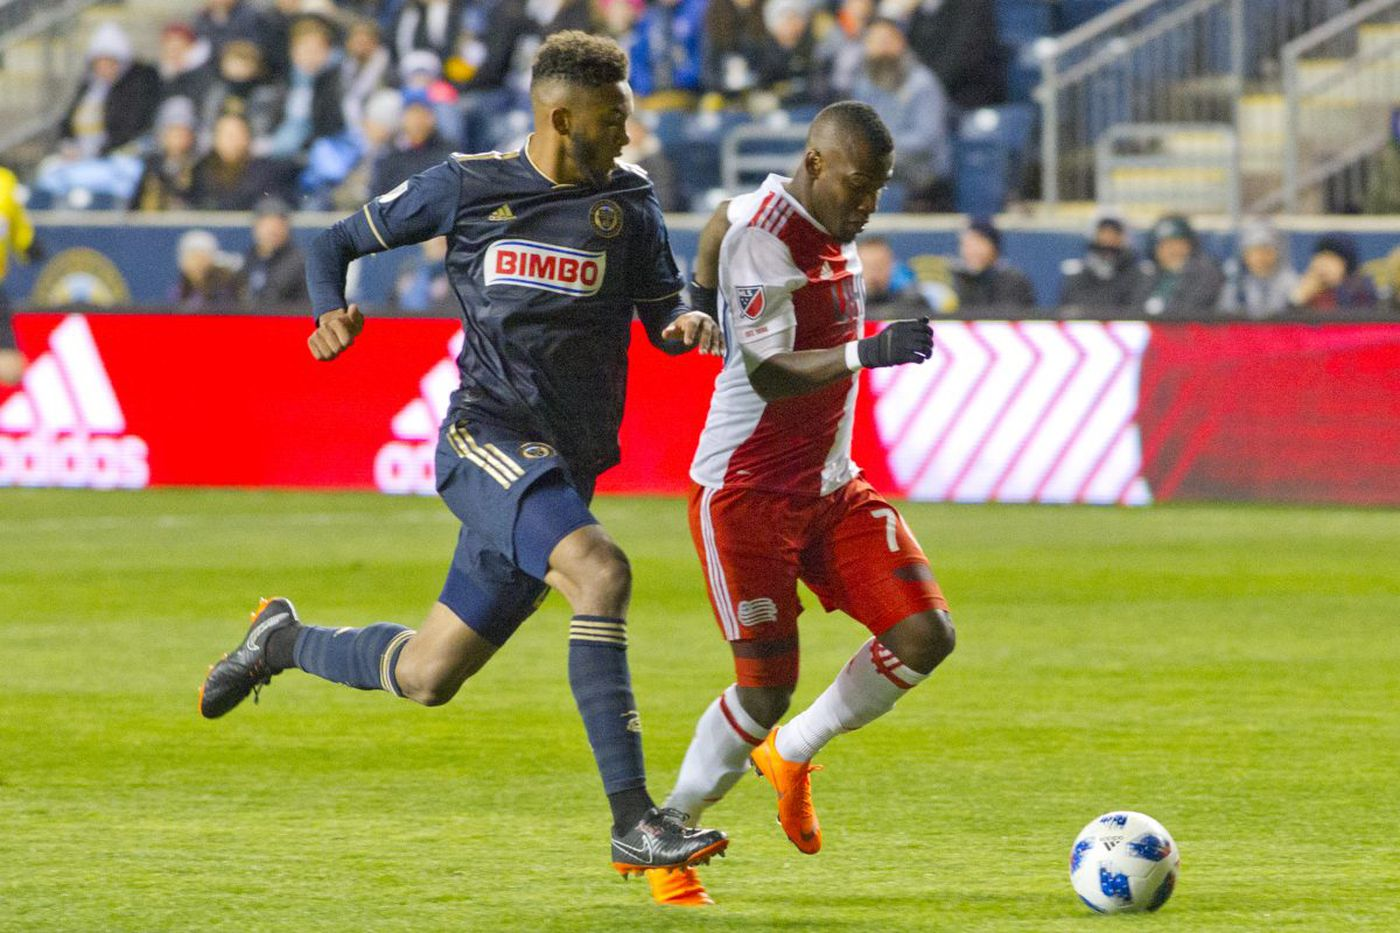 Auston Trusty's star turn in Union debut helped by U.S. national team pedigree